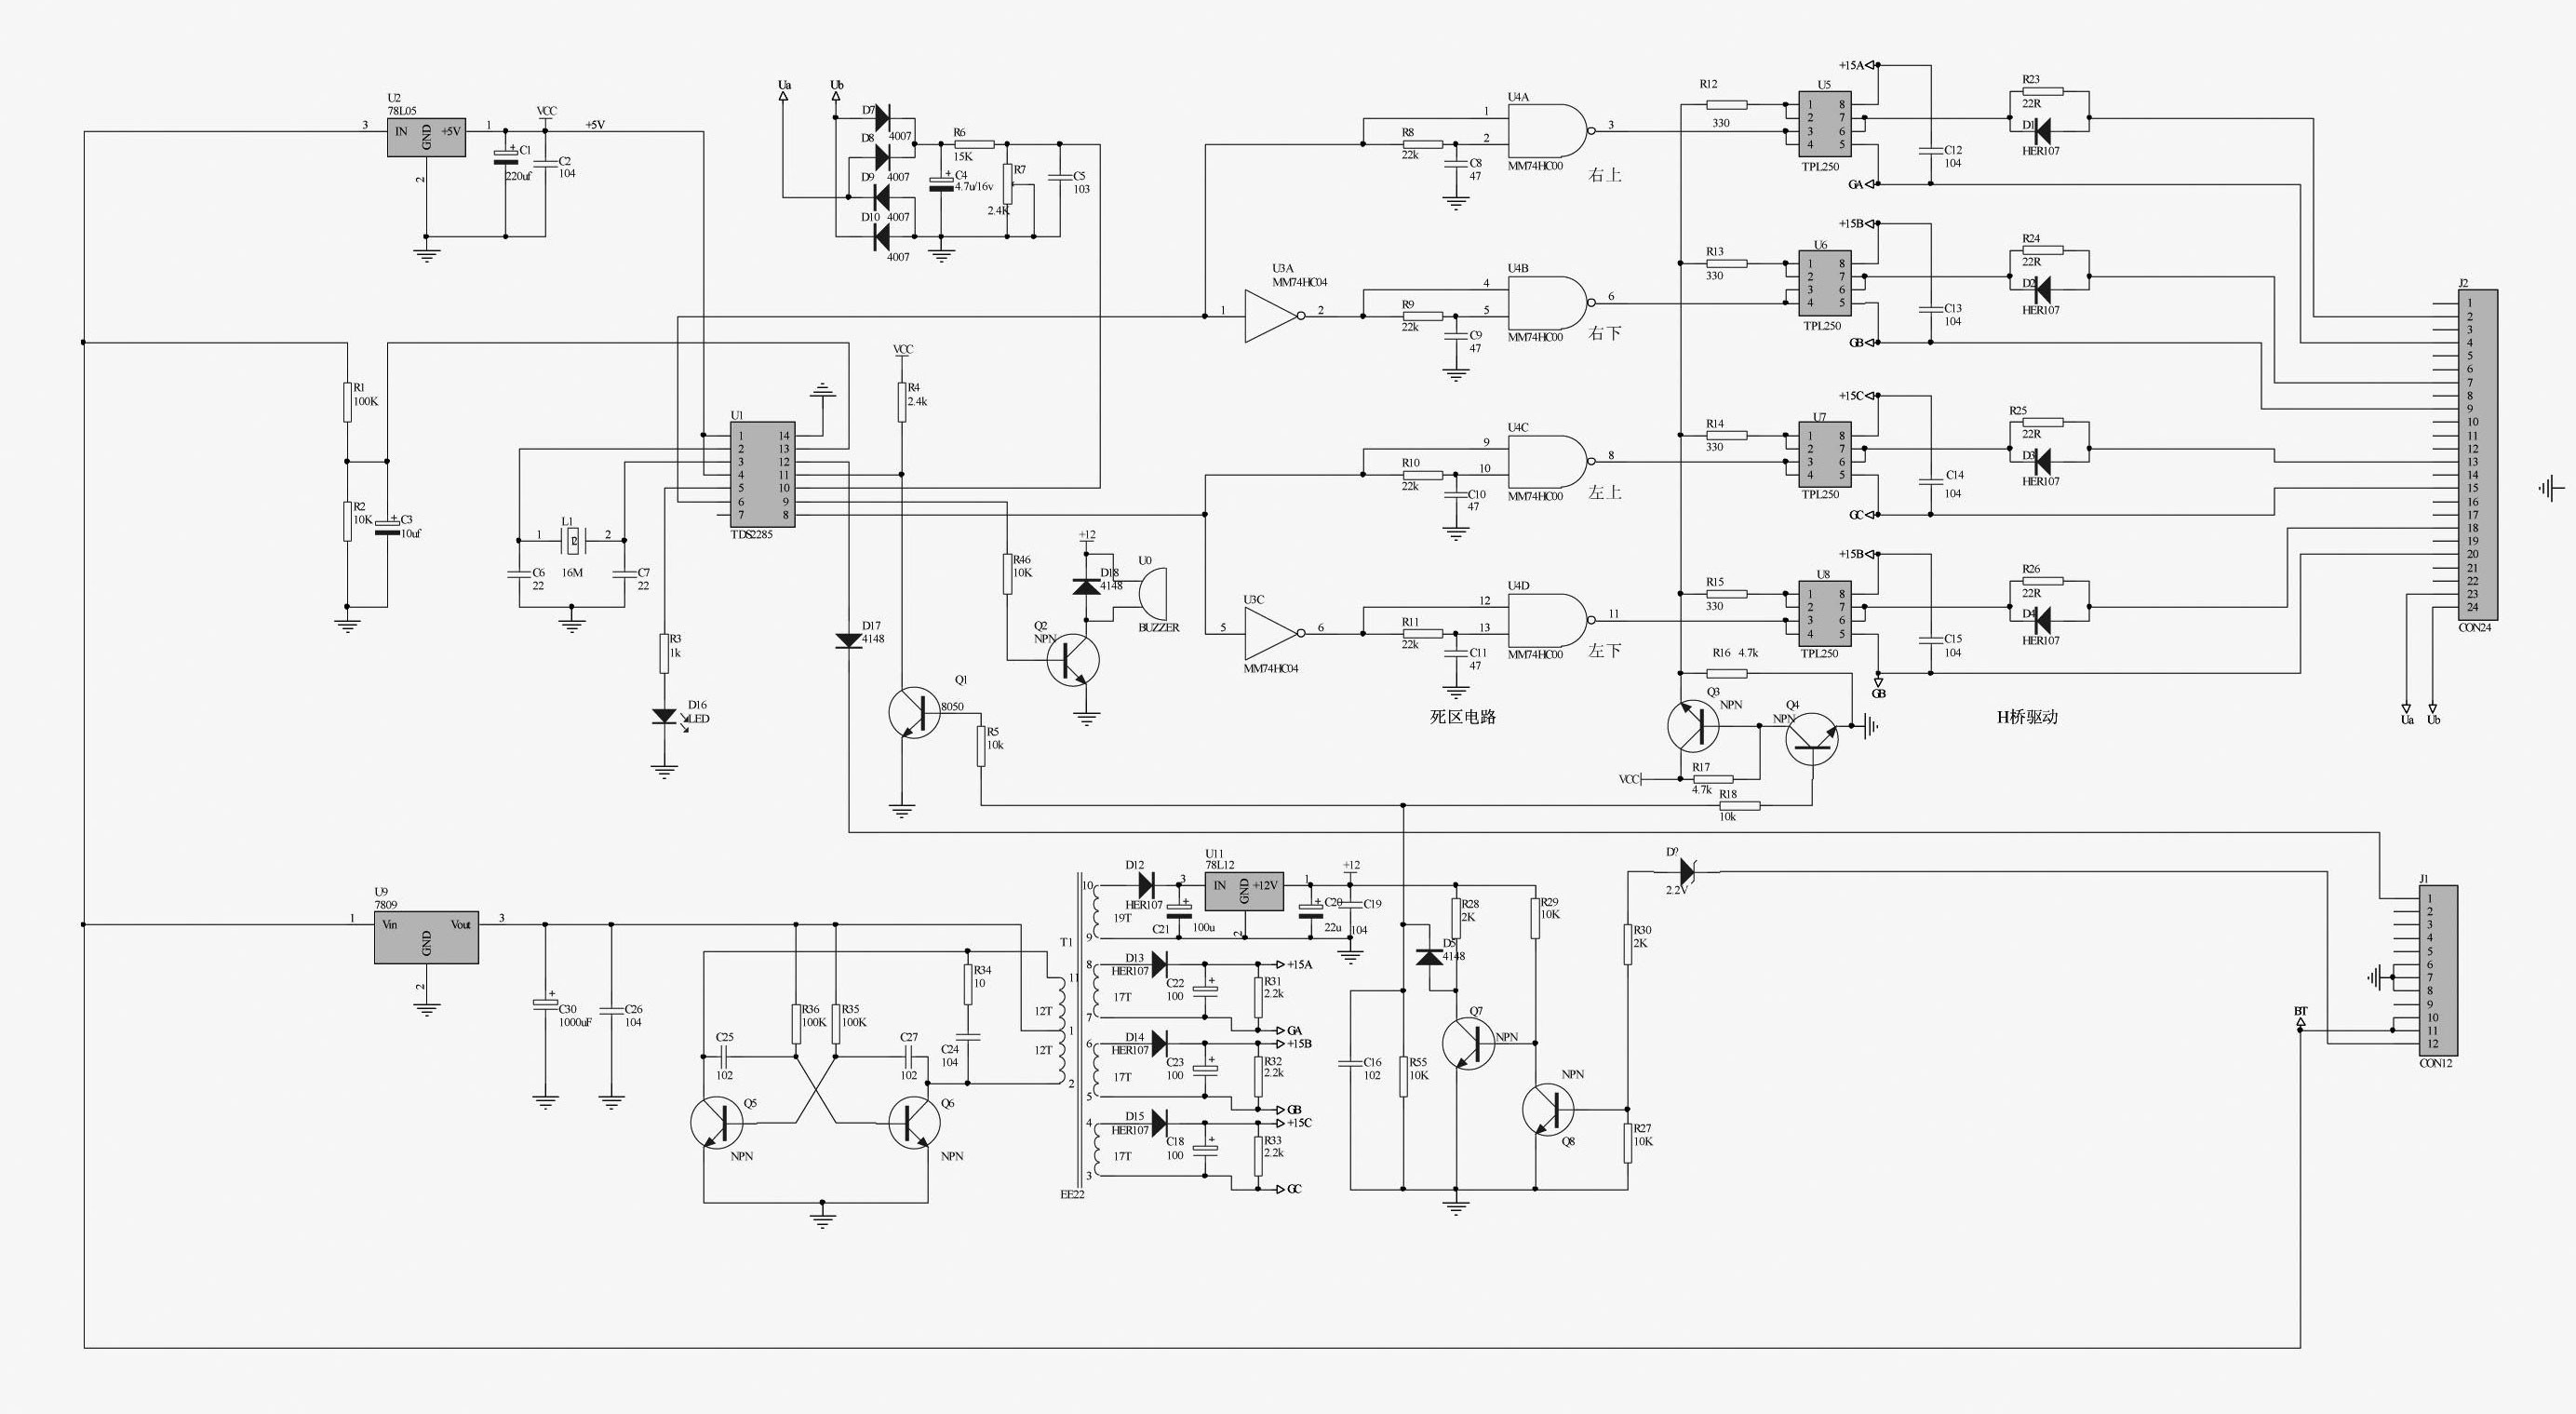 Car Inverter Circuit Diagram Getting Started with Littlebits Sanea Inverter Wiring Diagram Of Car Inverter Circuit Diagram